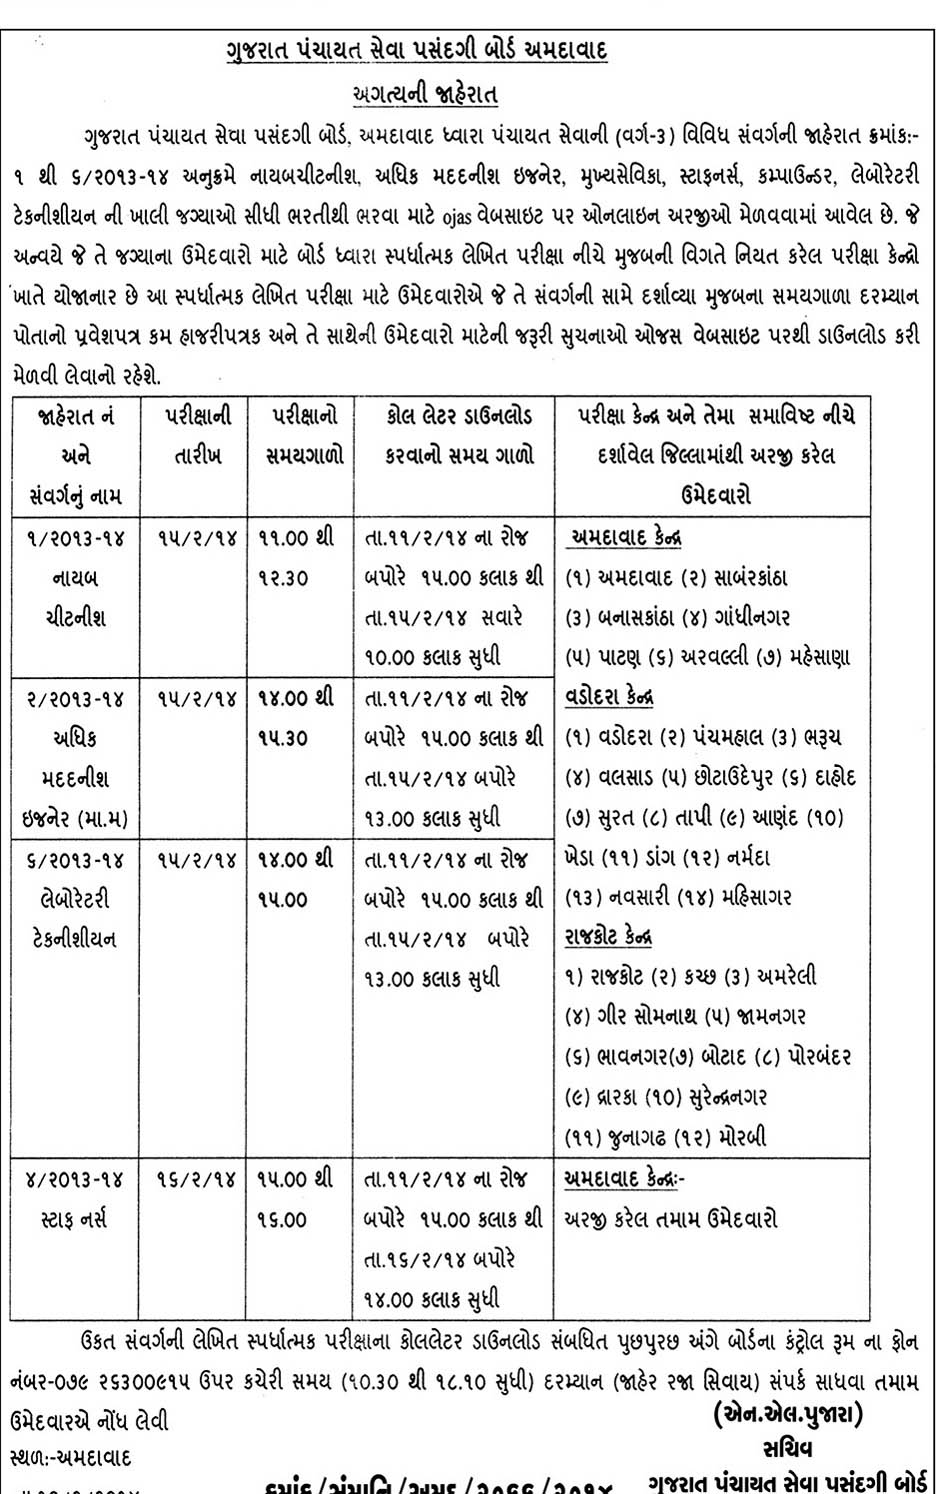 Gujarat Panchayat Seva Pasandgi Board Exam Call Letter Notification